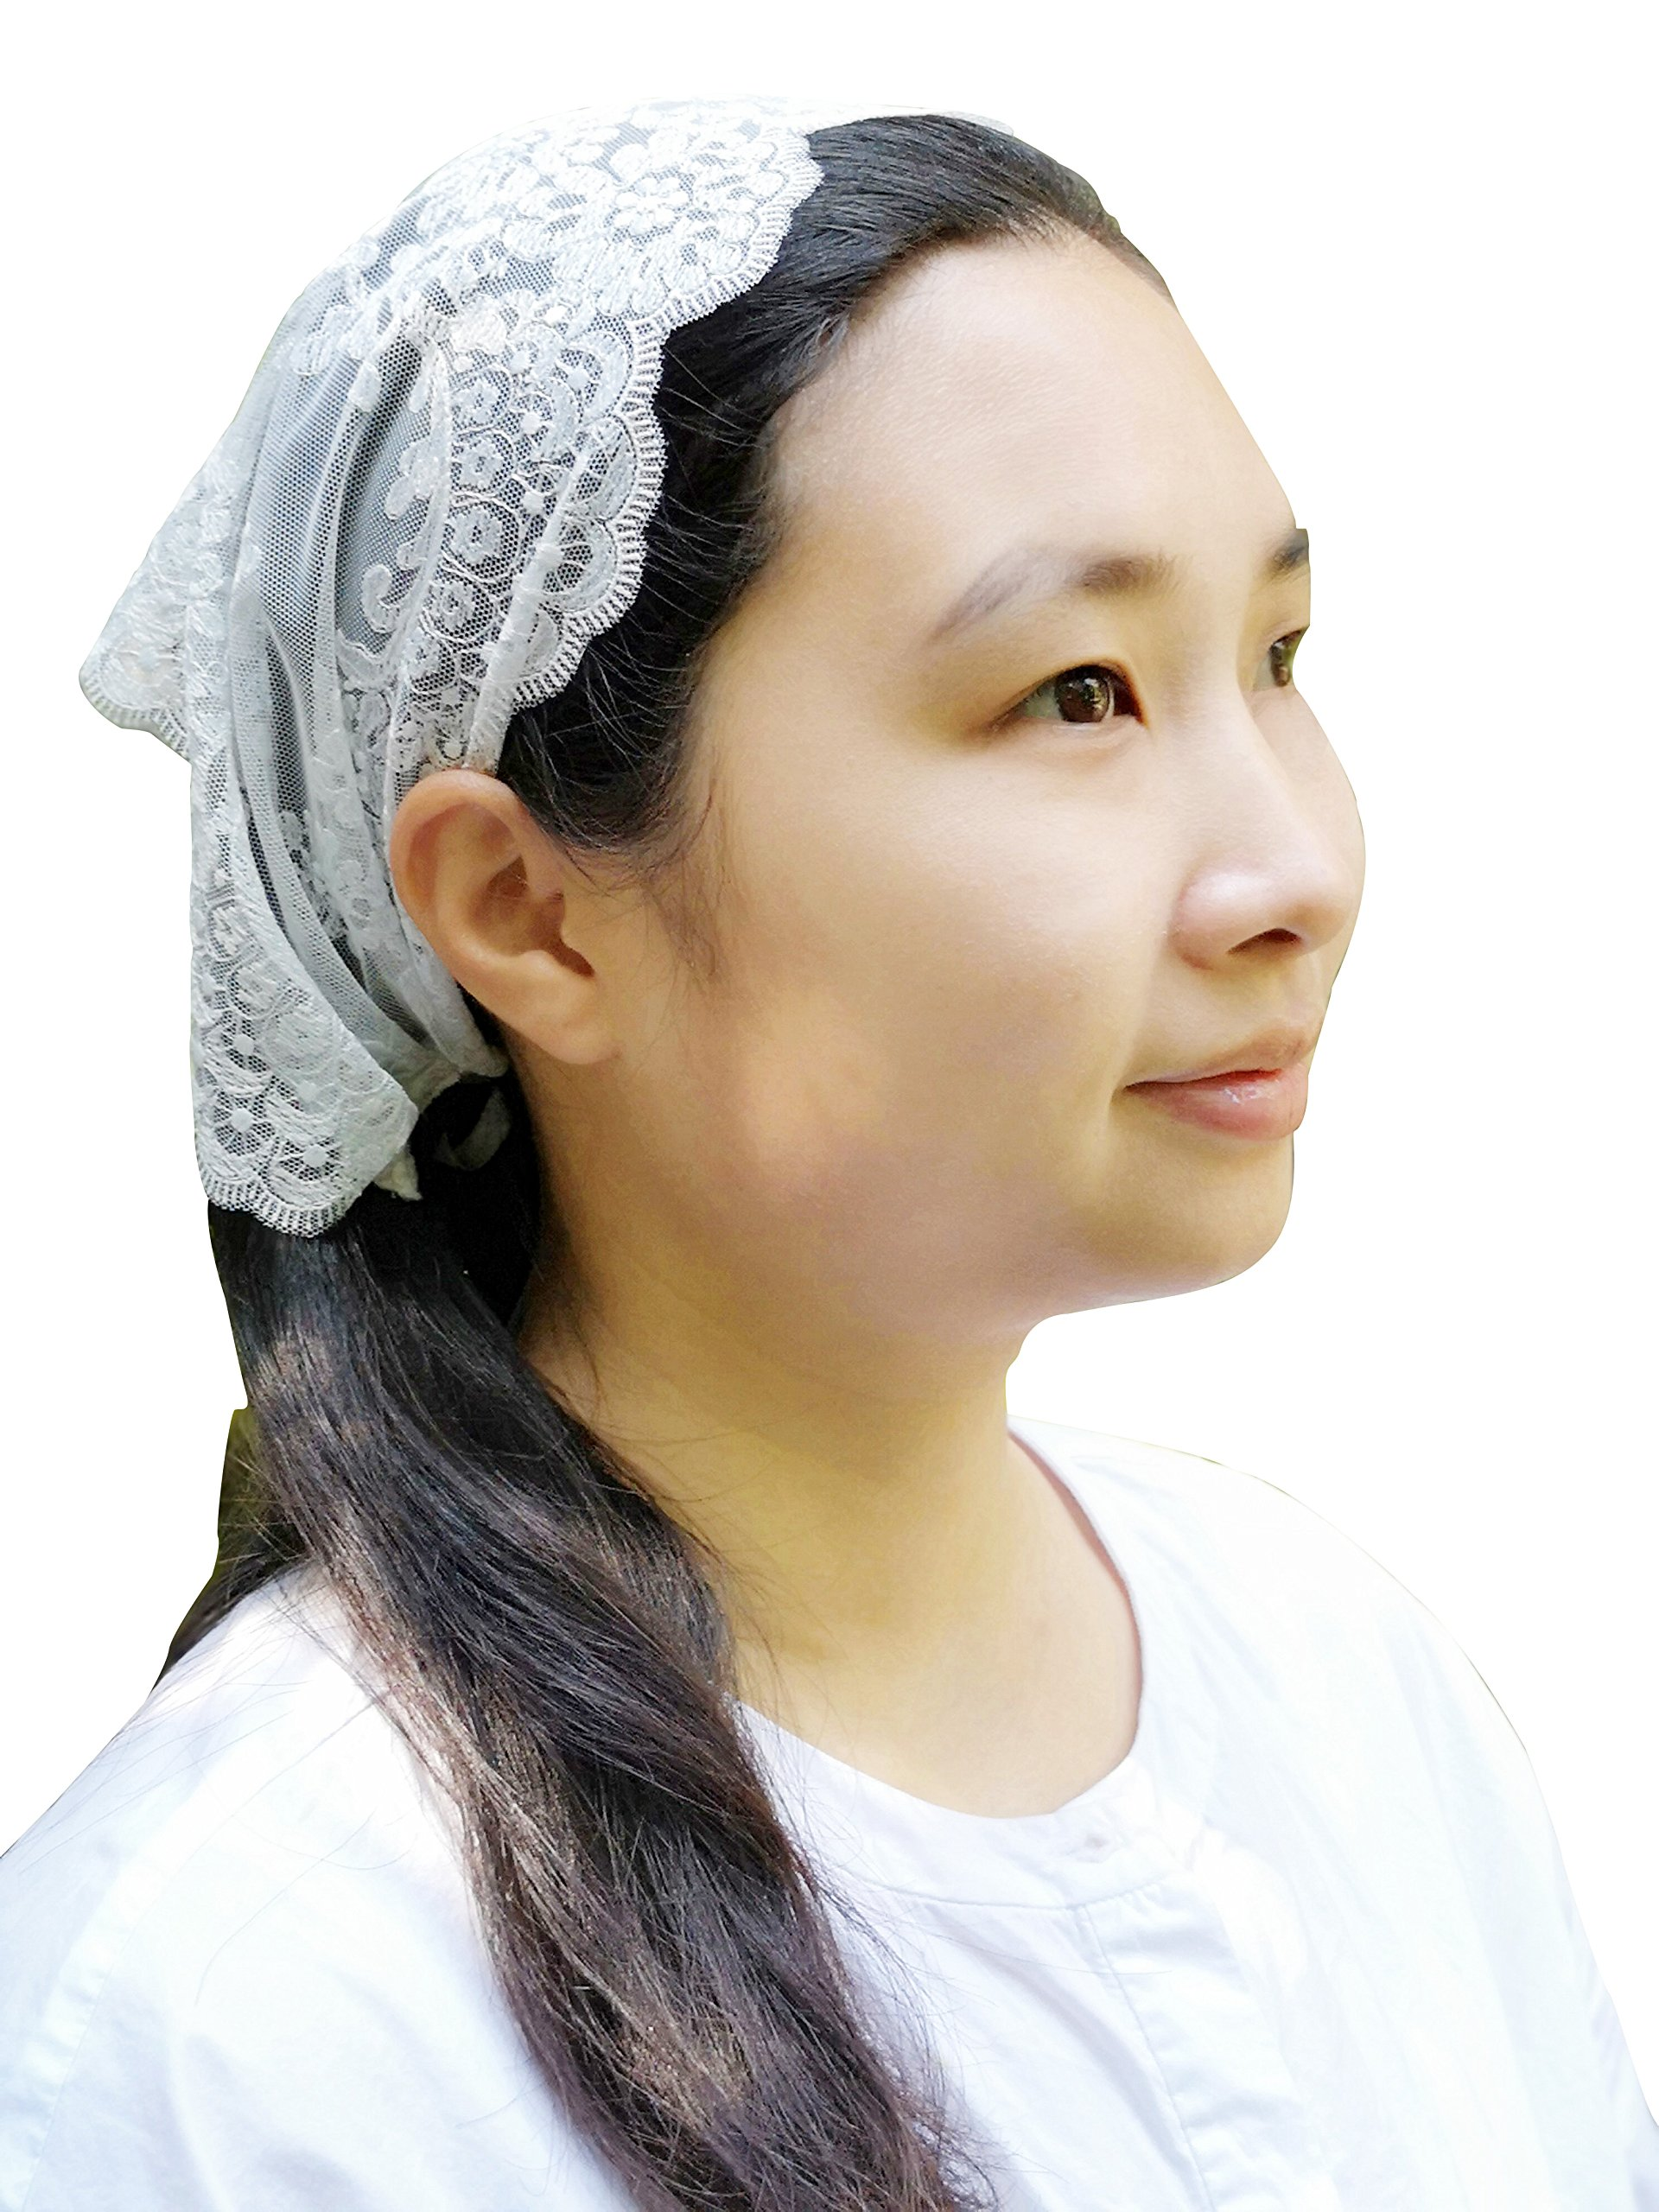 Lace Head Covering Church Veil Headwrap Ivory Tie-style Kercheif Y036